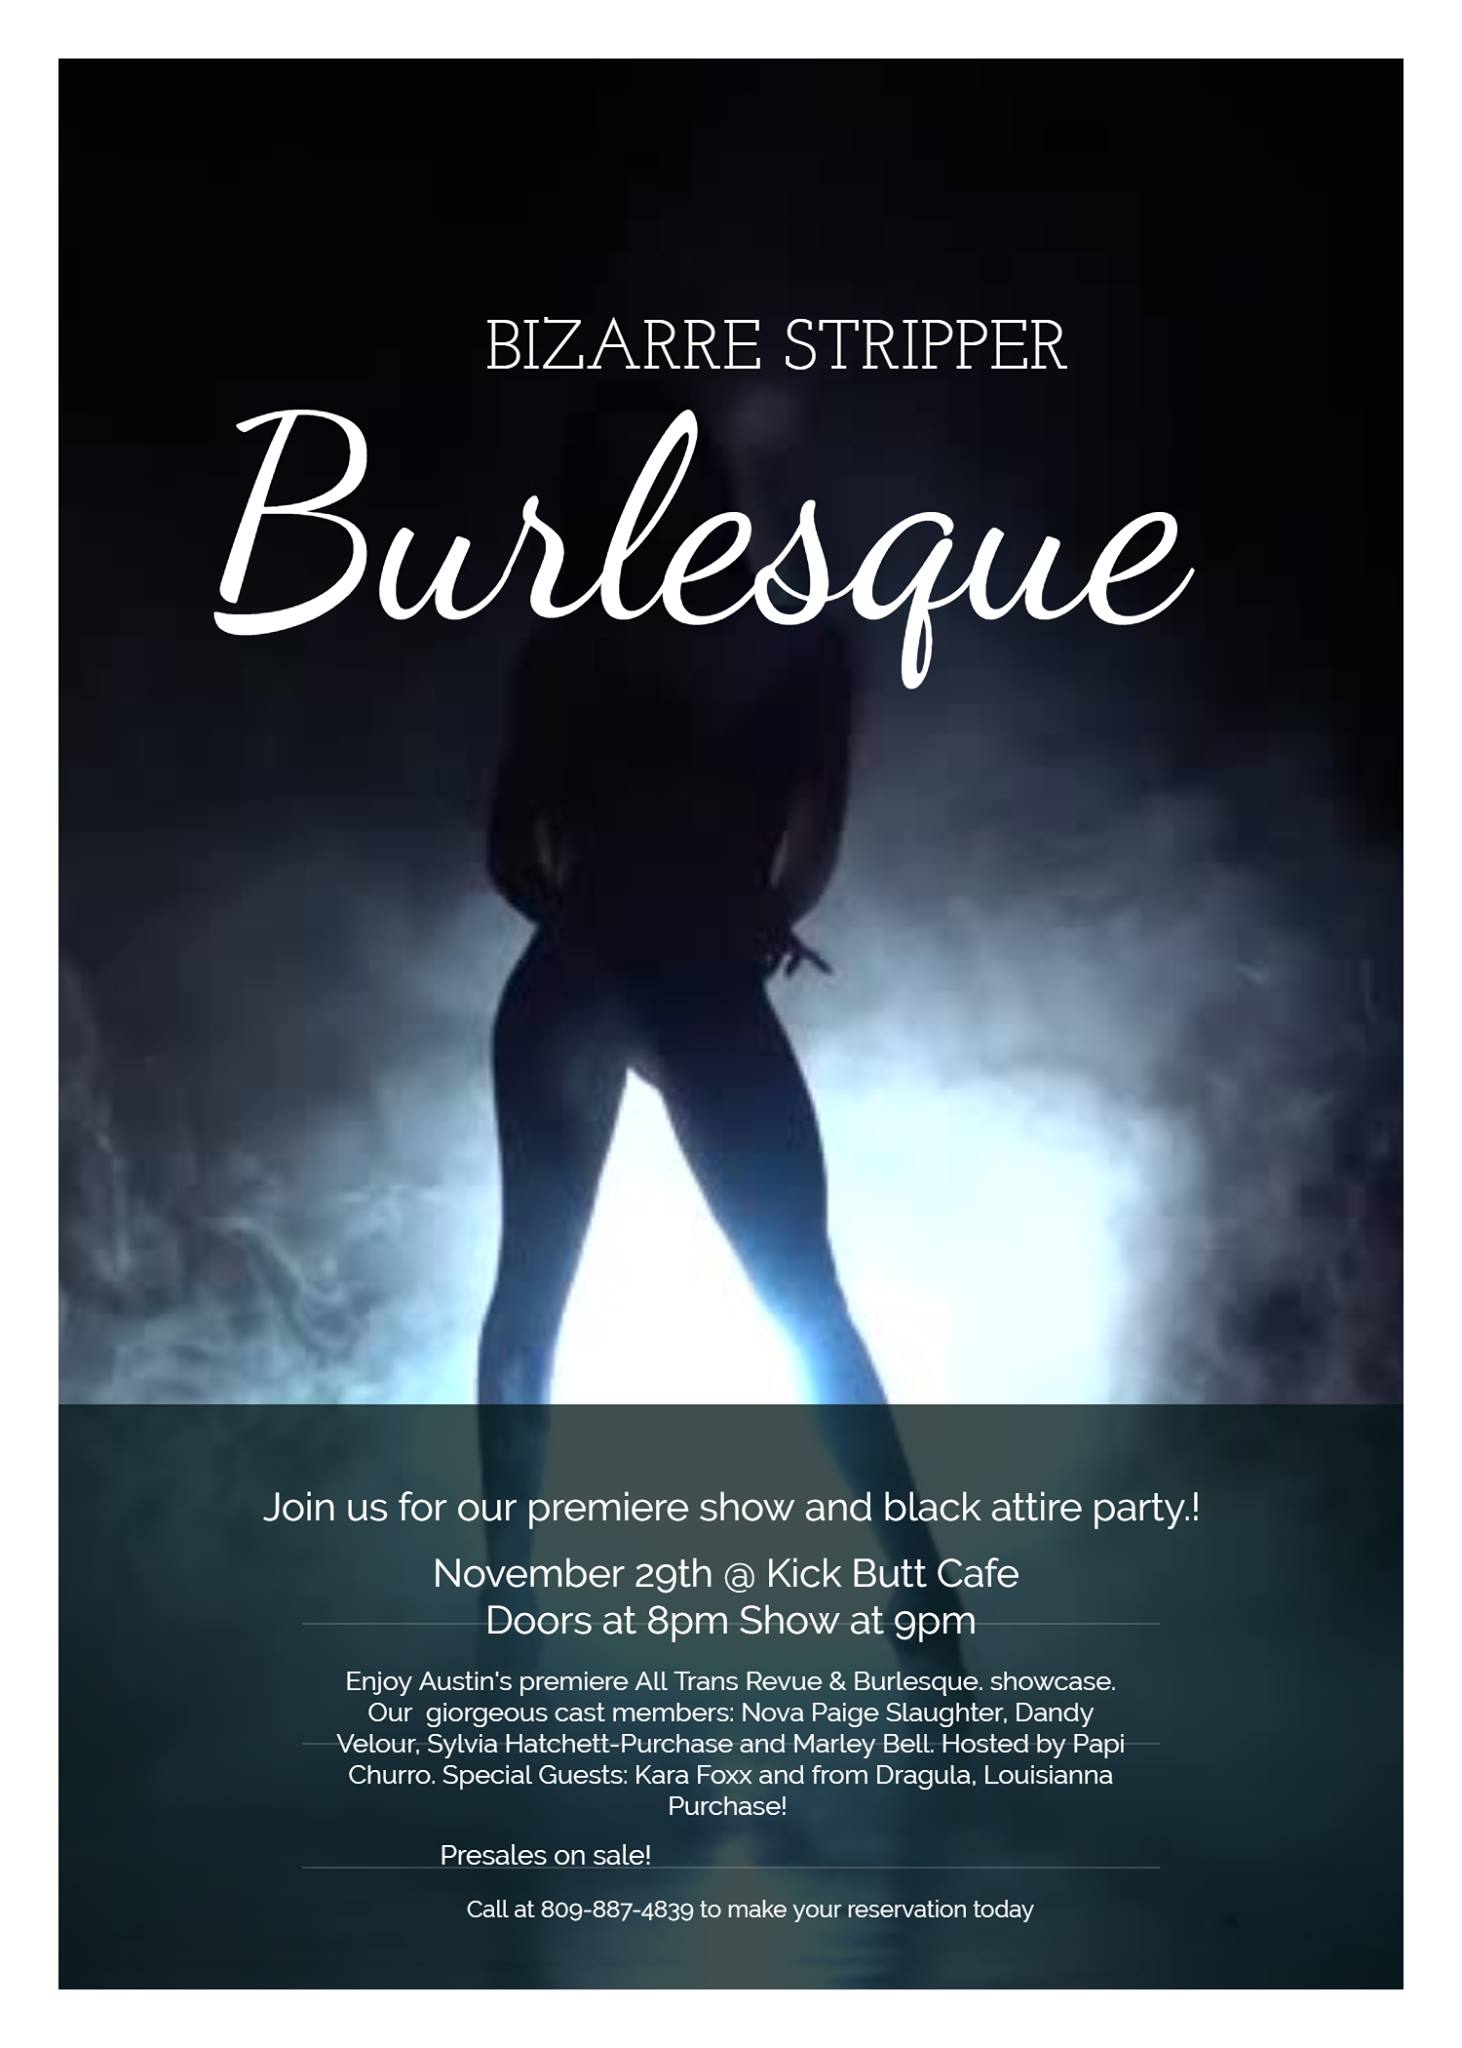 Bizarre Strippers Burlesque presents Black Attire Party